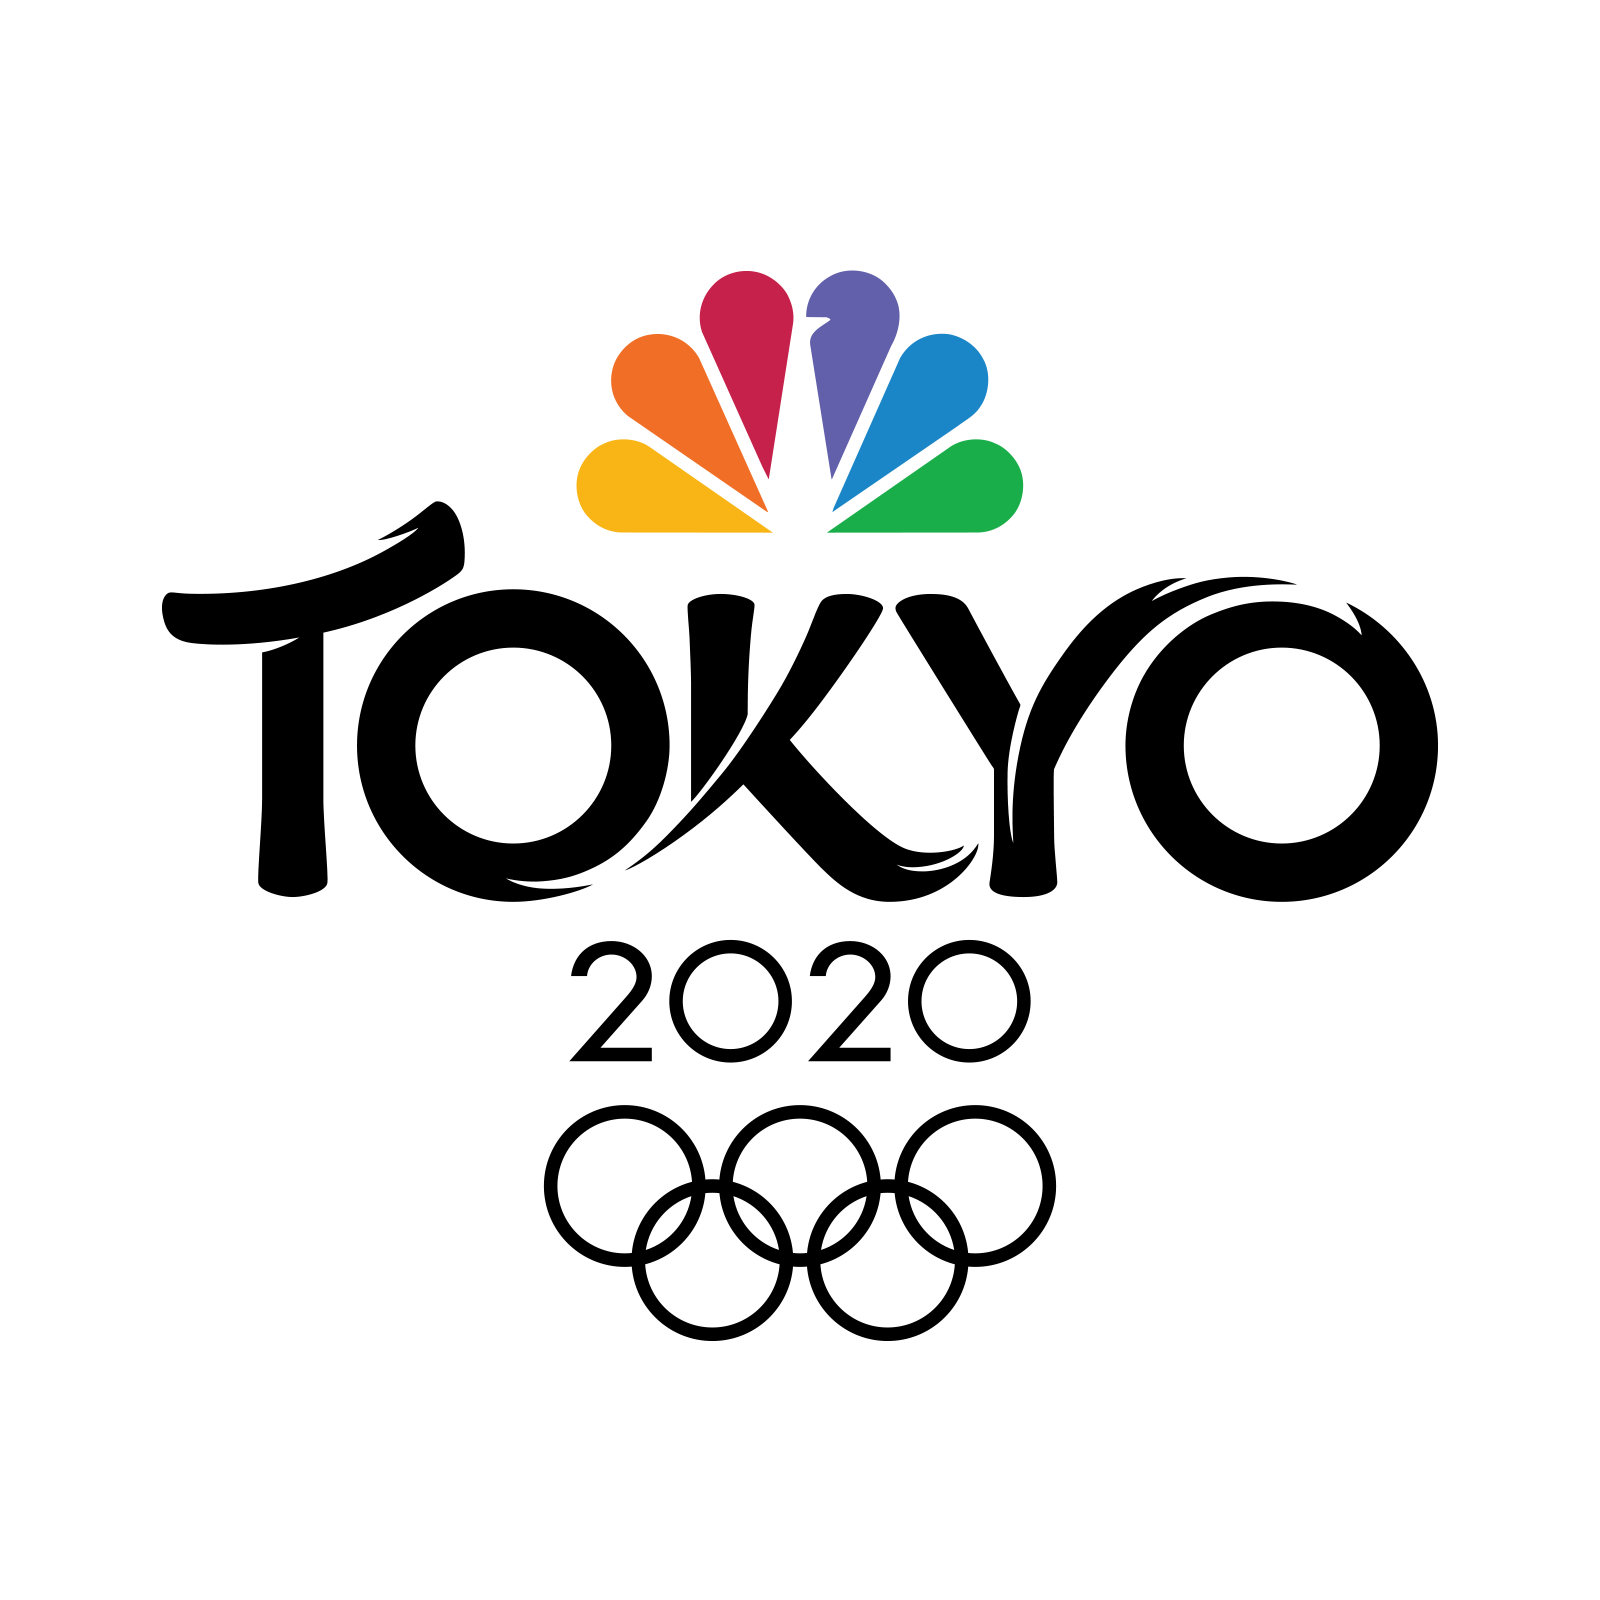 NBCUniversal plans to broadcast more than 7,000 hours of action from Tokyo 2020 on its various platforms ©NBCU